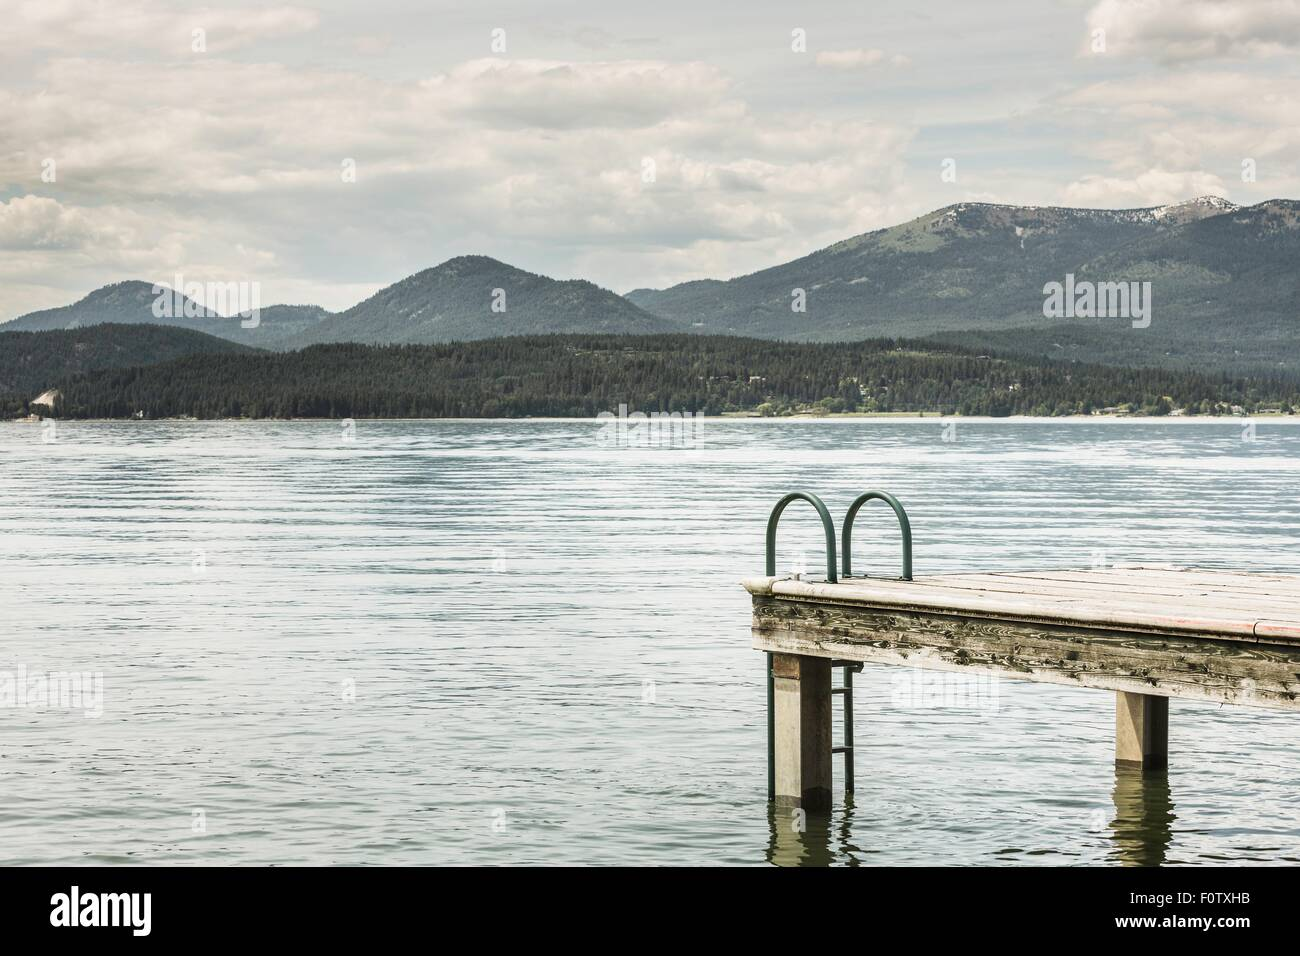 Jetty and water, Sand Point, Idaho, USA - Stock Image